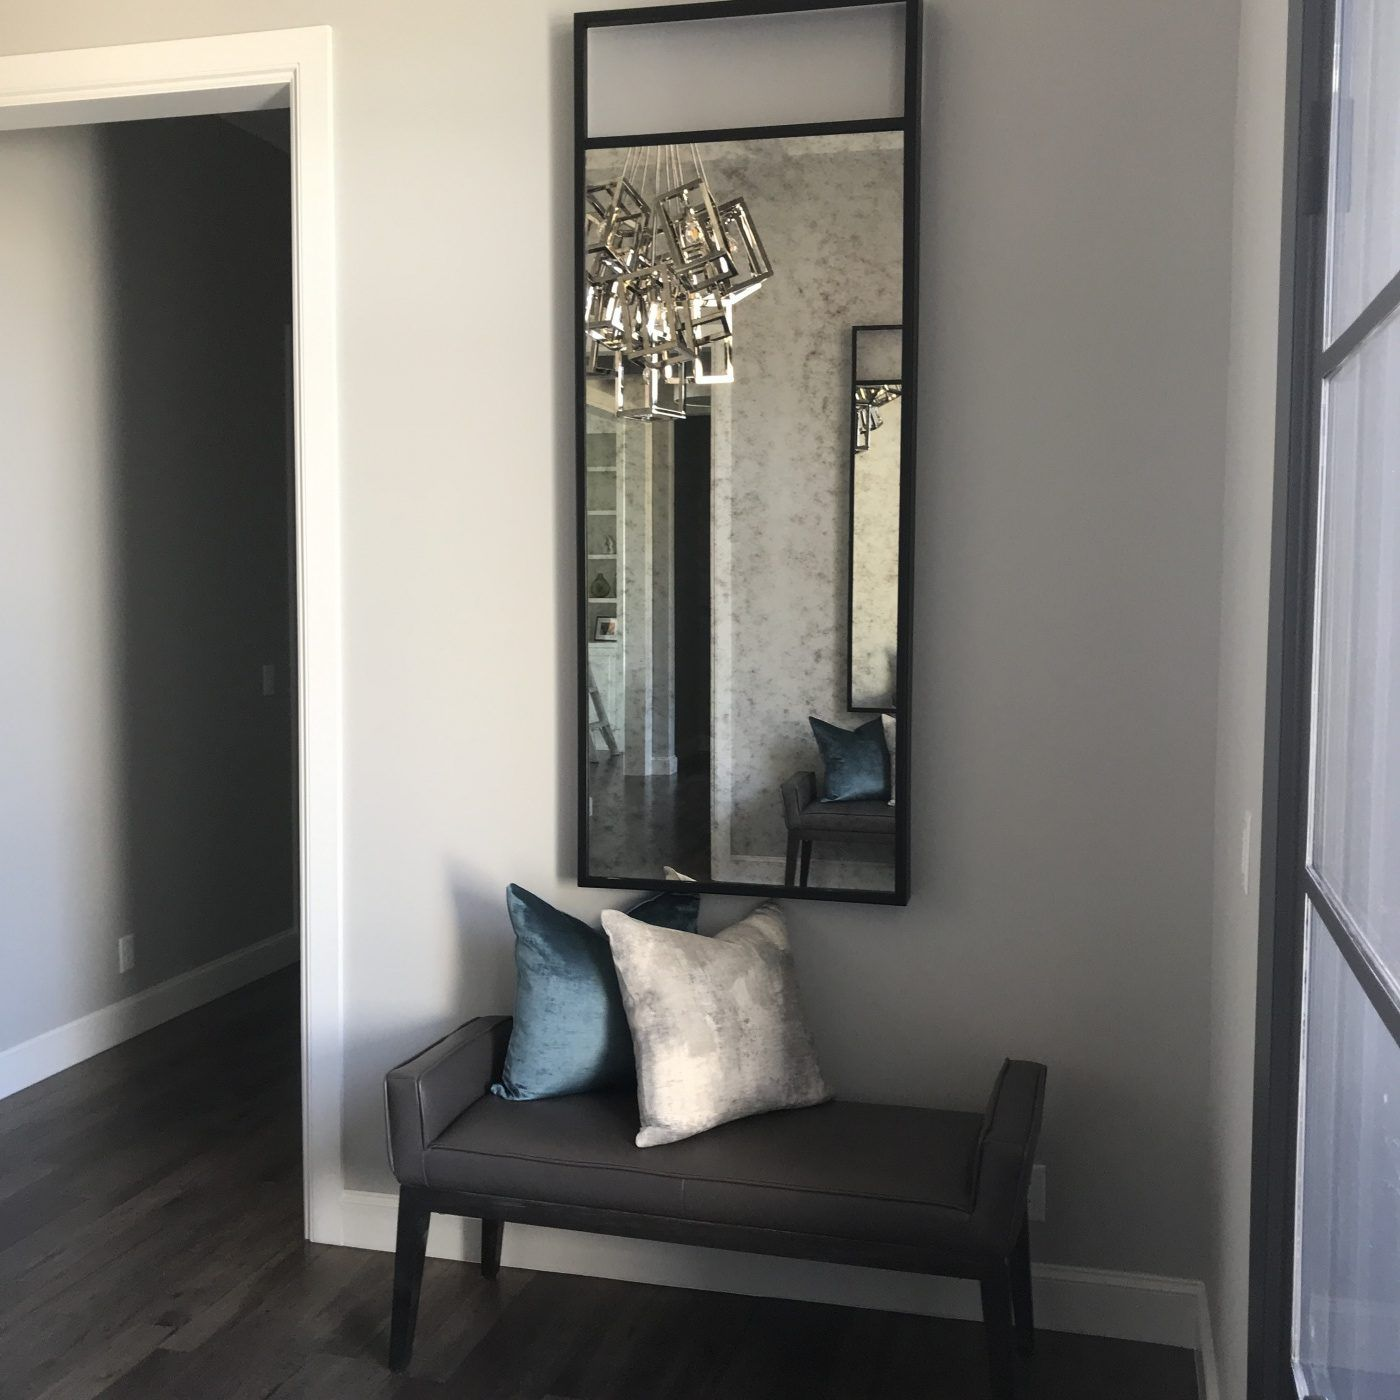 4 neutral interior paint colors we re obsessing over on interior designer recommended paint colors id=38039